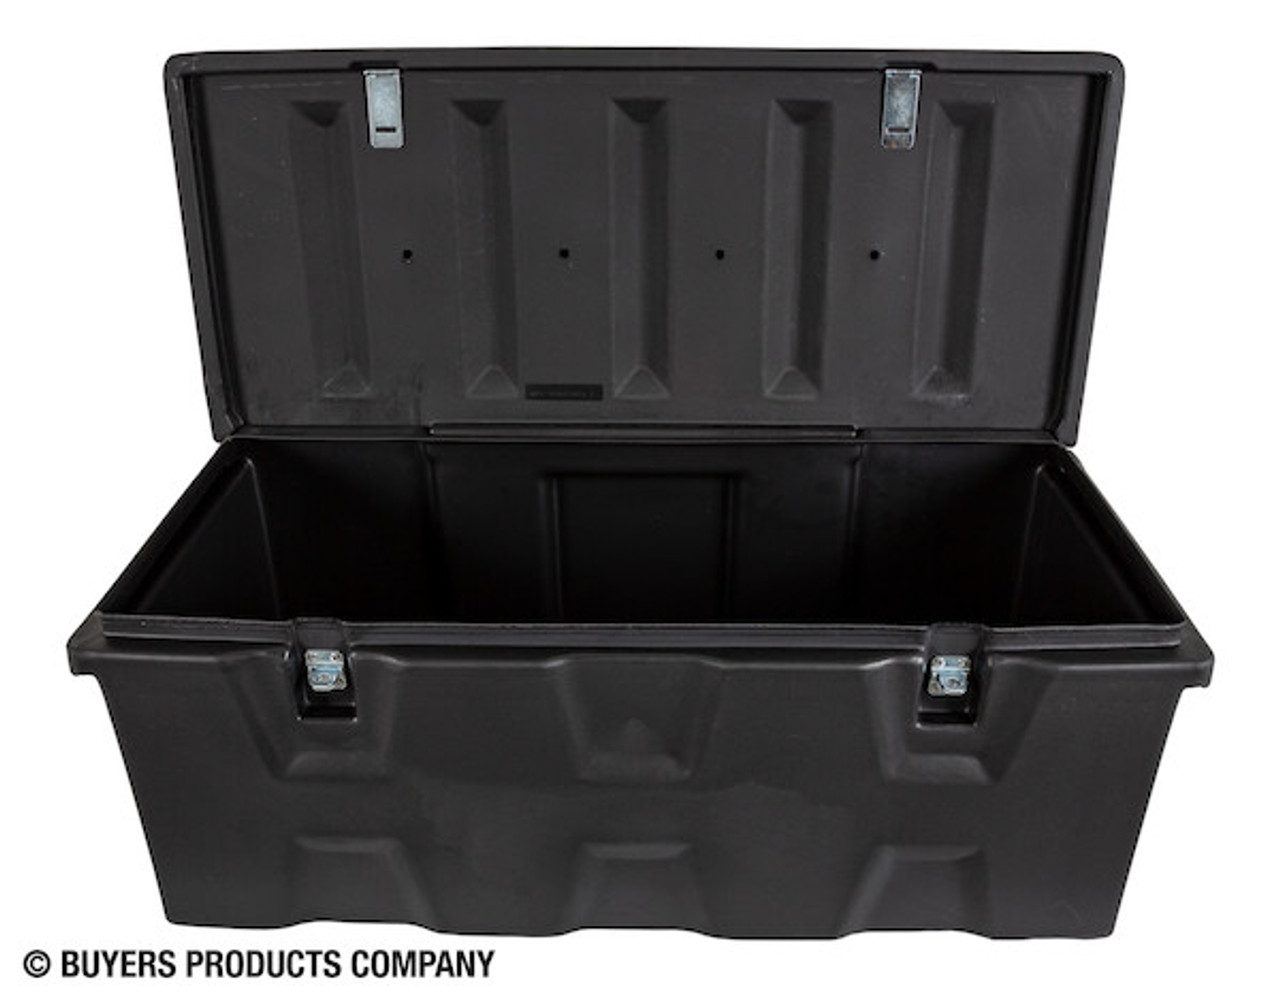 1712240 BUYERS BLACK POLY ALL-PURPOSE CHEST TOOLBOX